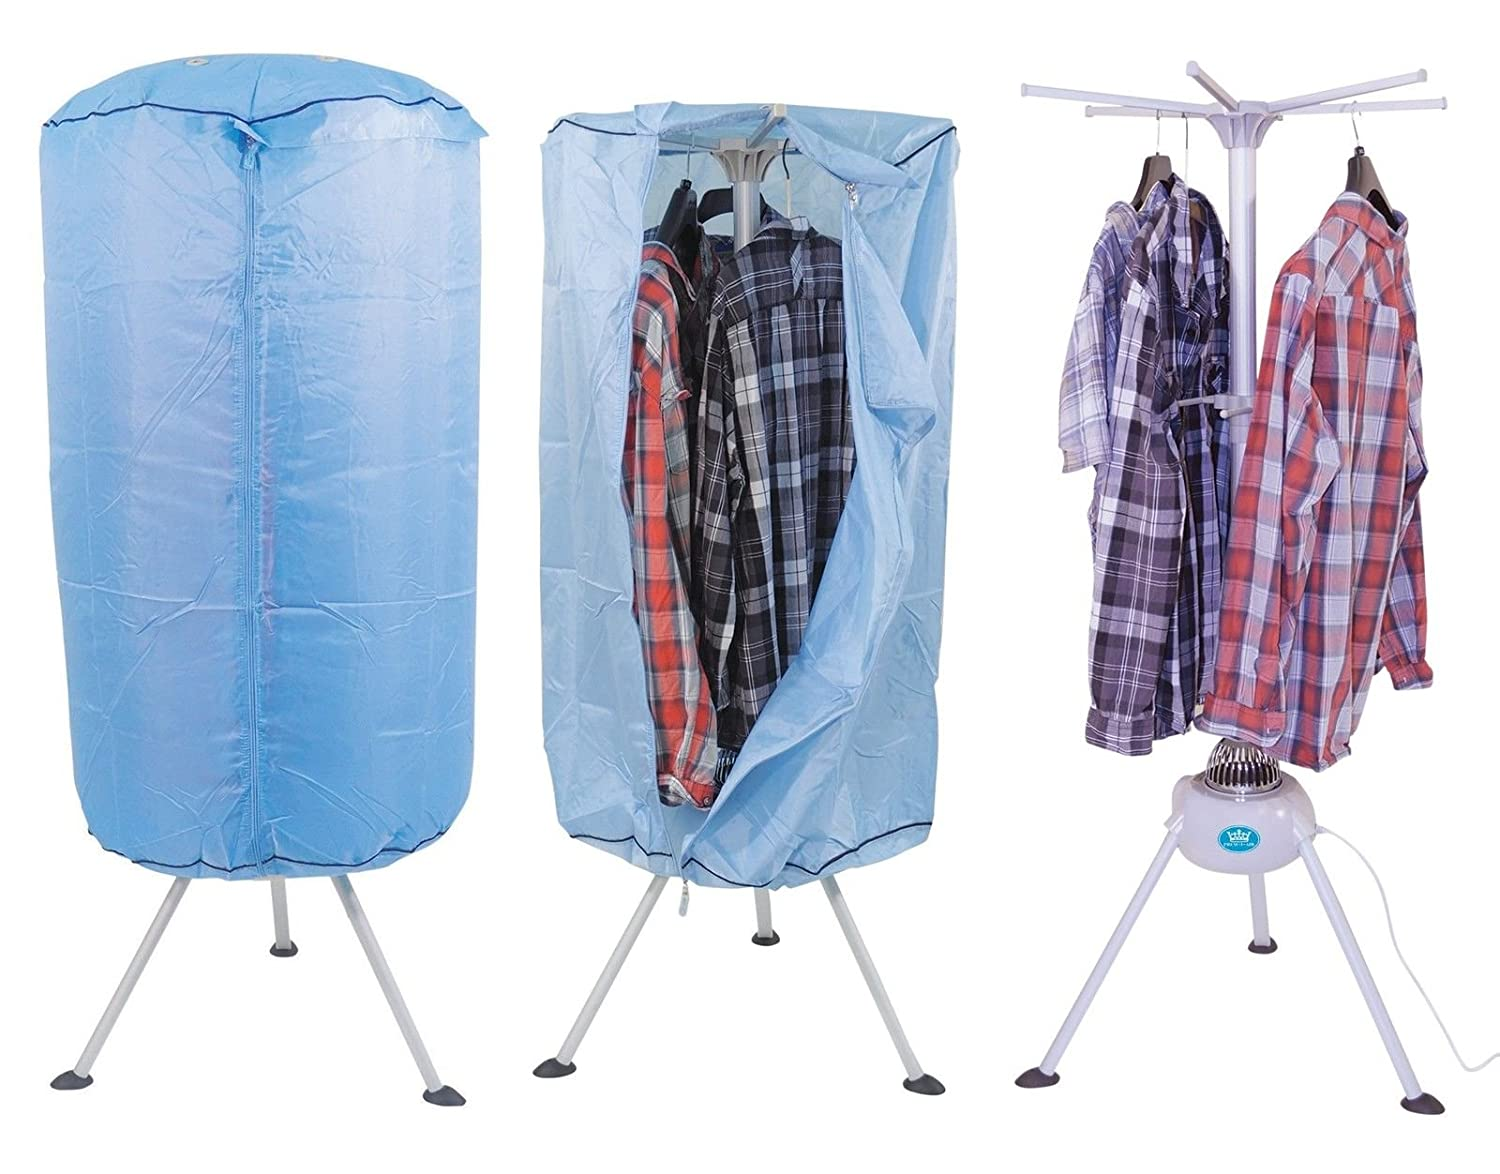 Good MP Essentials Portable Indoor Hot Air Laundry Clothes Dryer U0026 Airier With  Programmable Timer: Amazon.co.uk: Kitchen U0026 Home